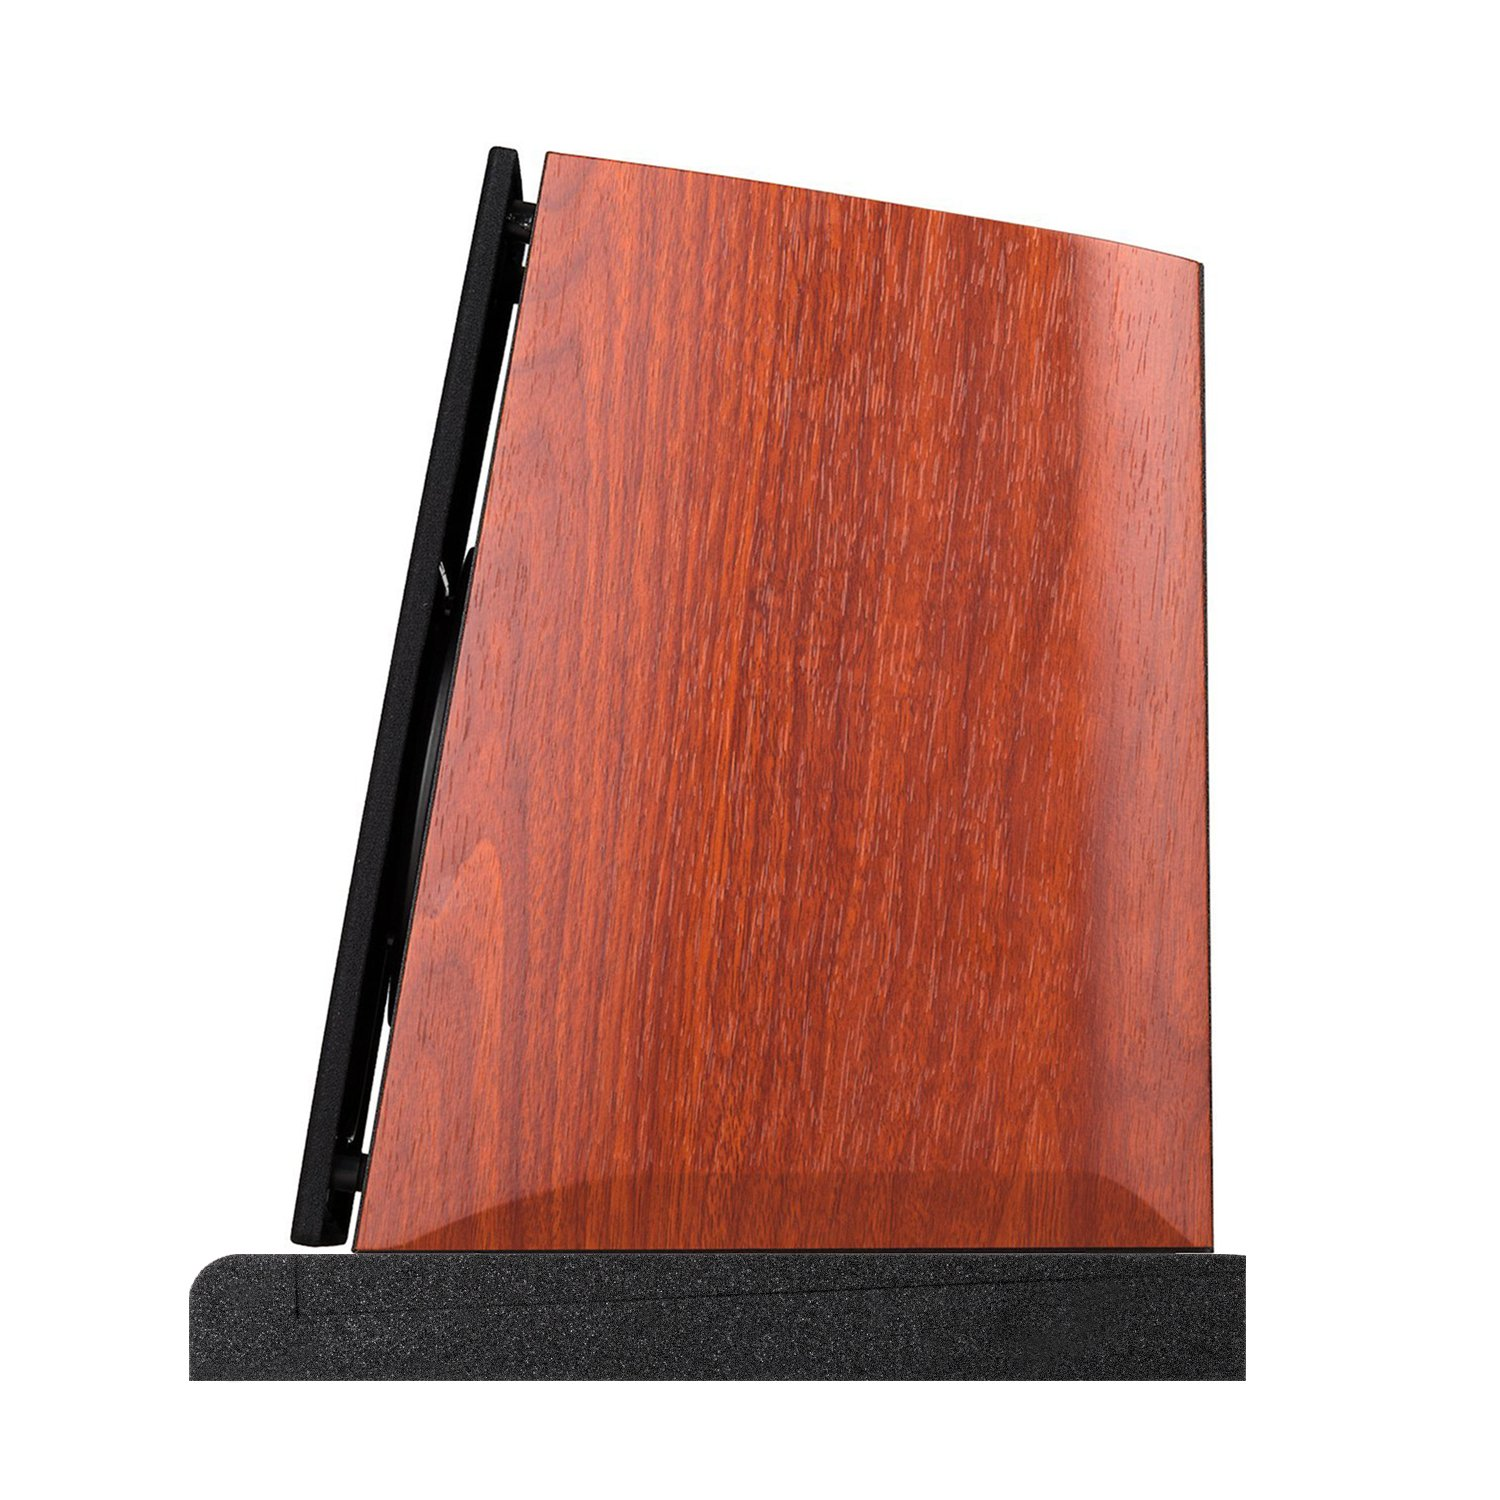 Studio Monitor Isolation Pads, Suitable for 5'' - 8'' inch for Speakers, High-Density Acoustic Foam for Significant Sound Improvement, Prevent Vibrations and Fits most Stands - 2 Pads by Shayson (Image #5)